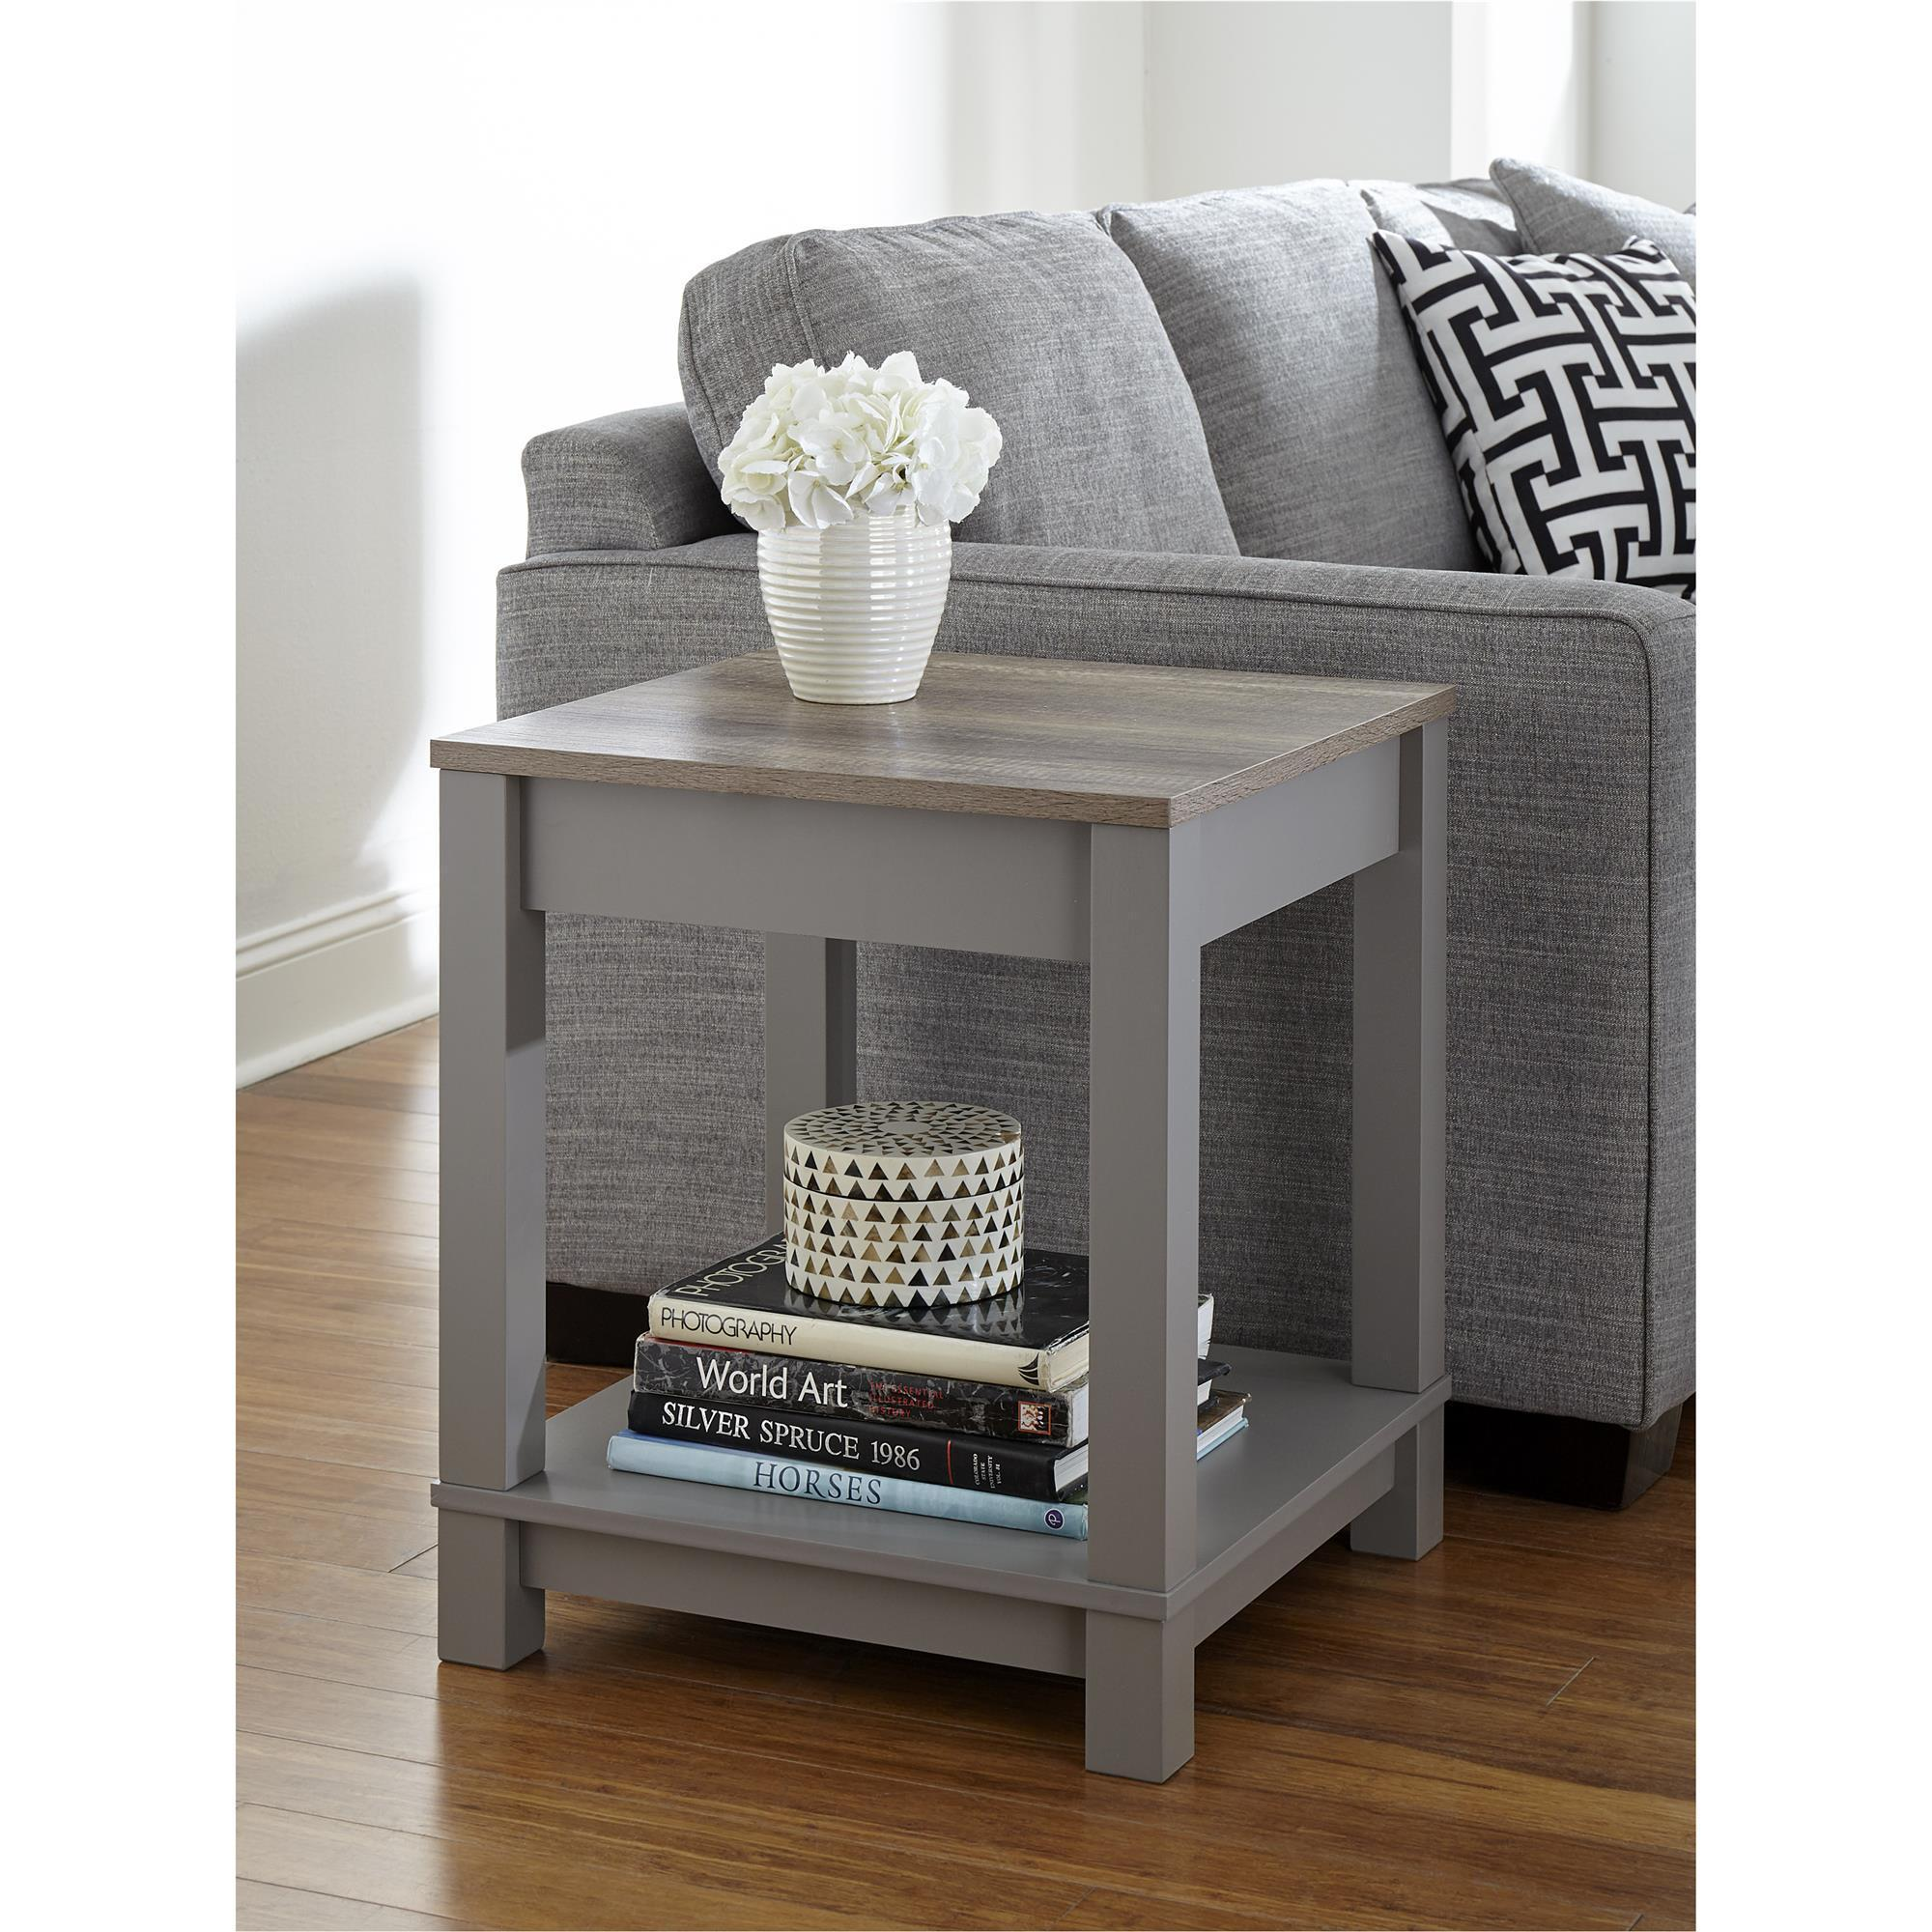 Details About Wooden End Tables Side Table Coffee W Shelf Organizer Living Room Bedroom Gray